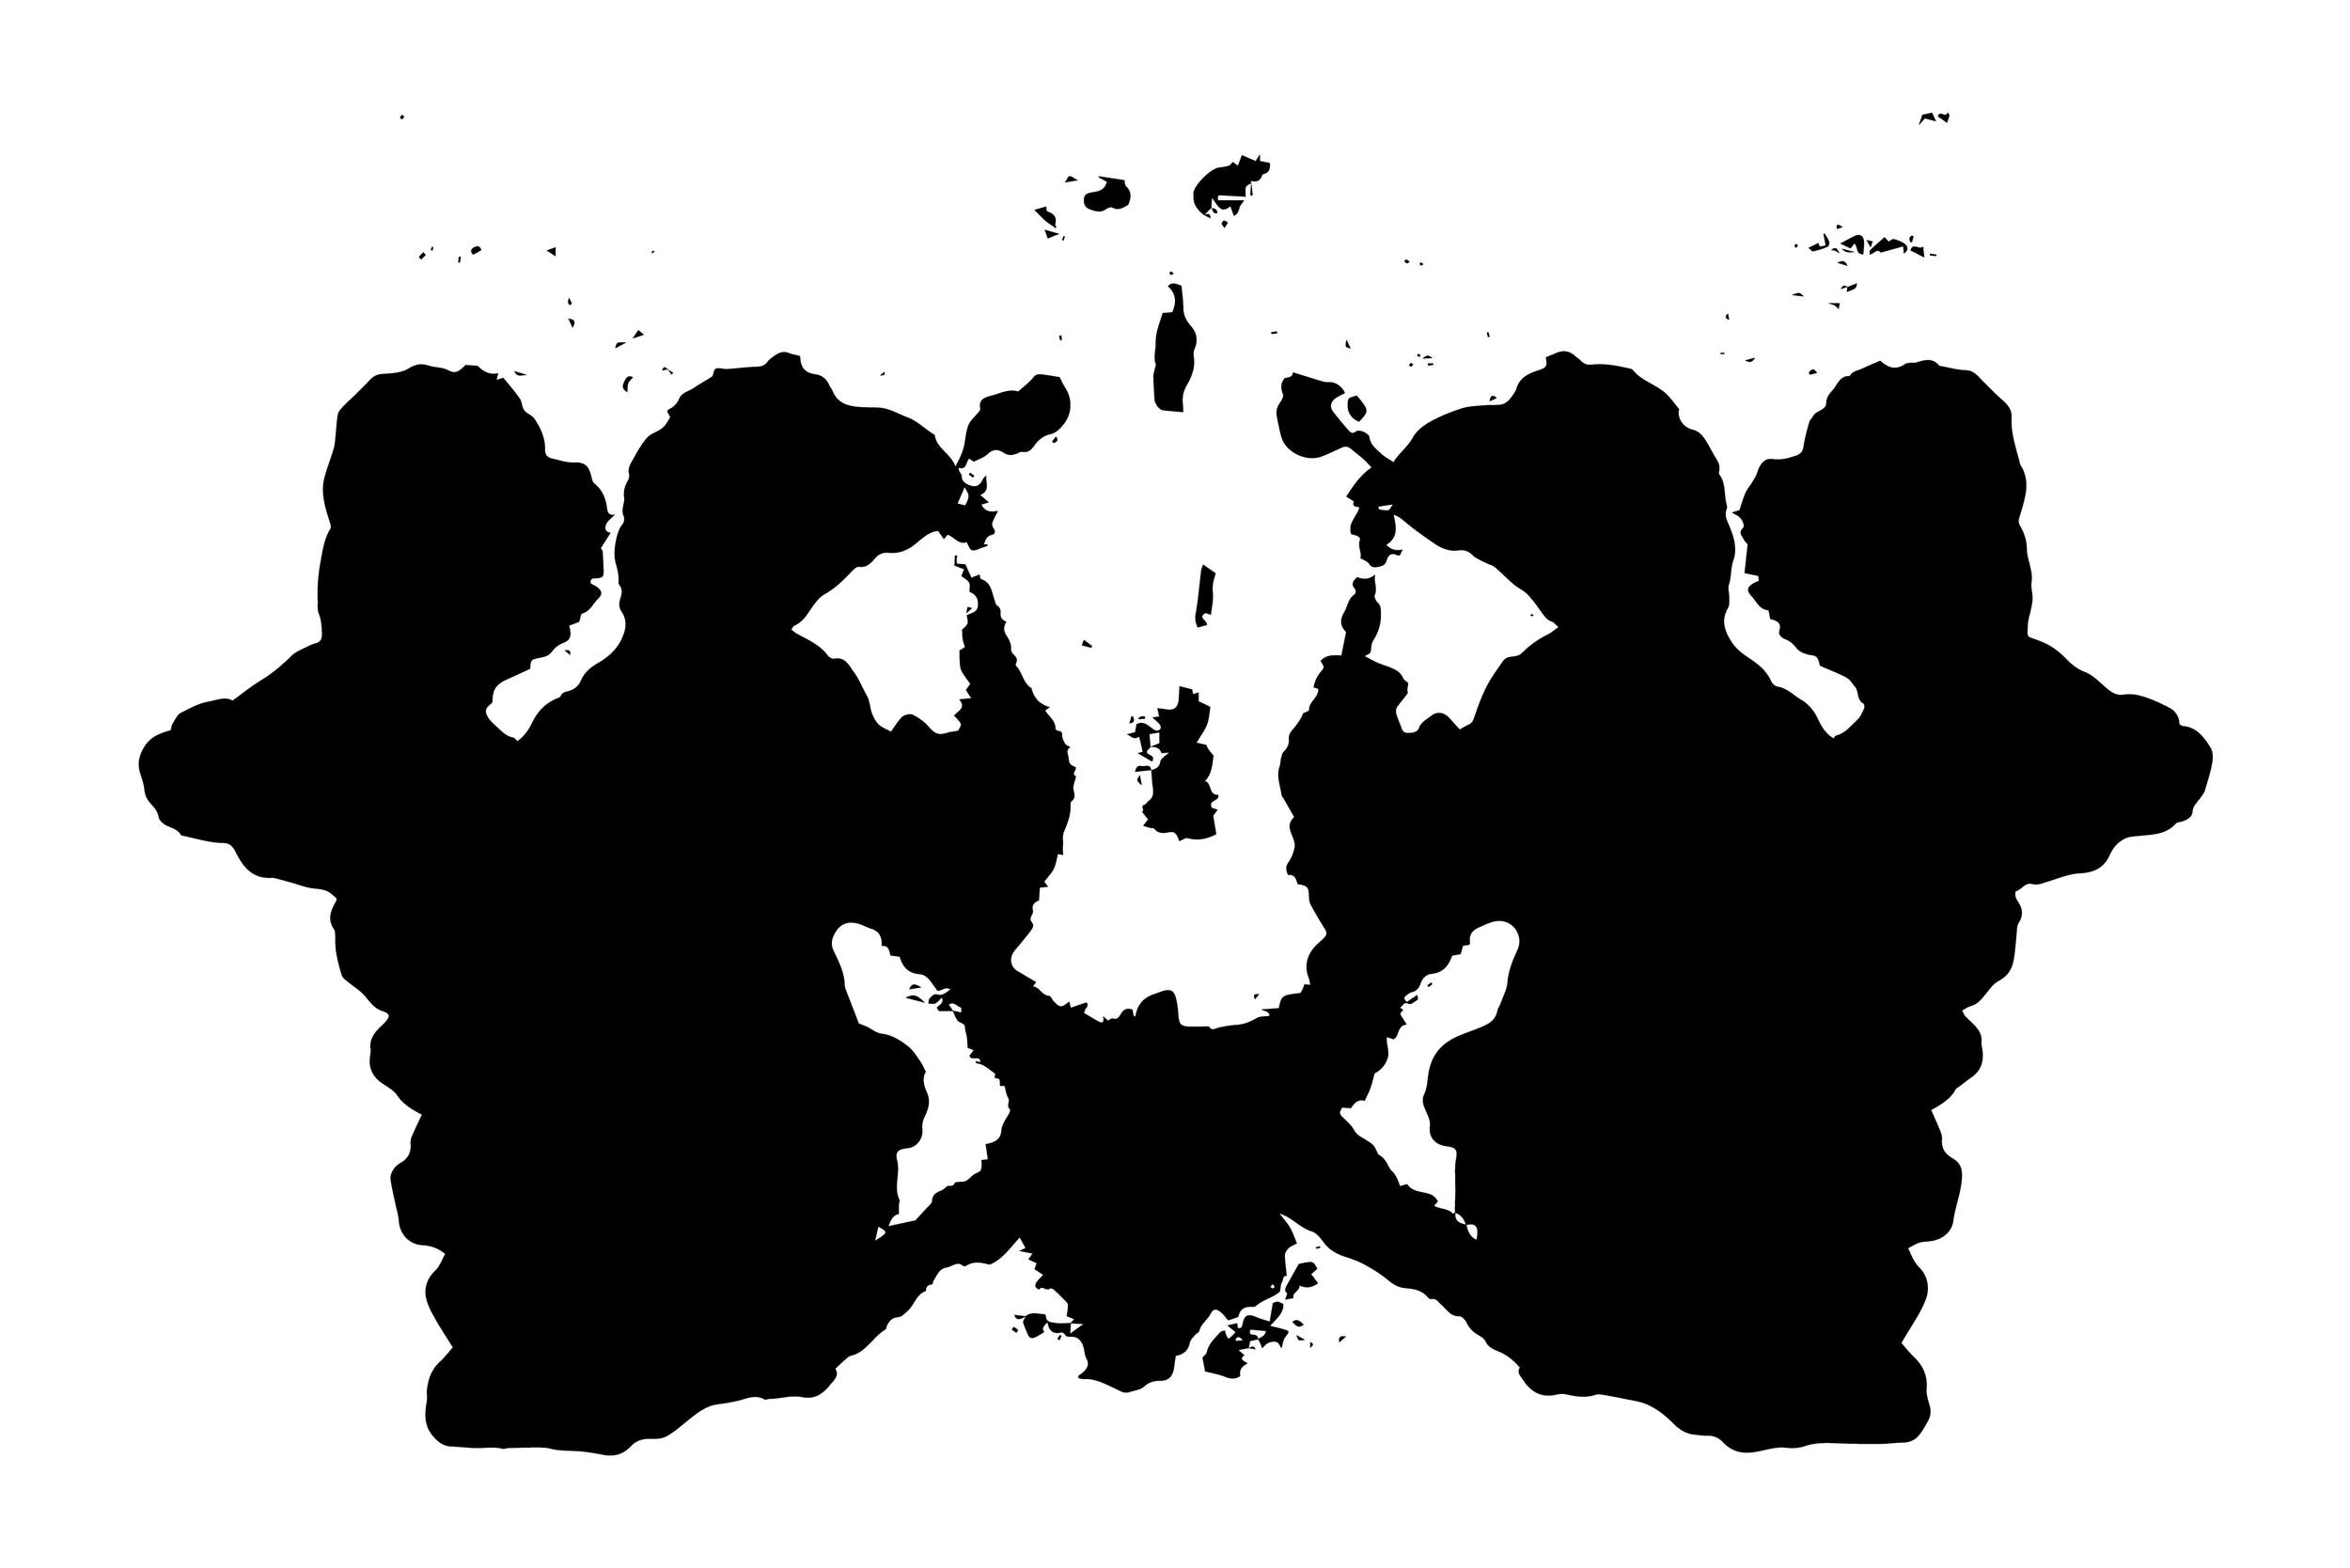 A rorshach test - black and white and your interpretation